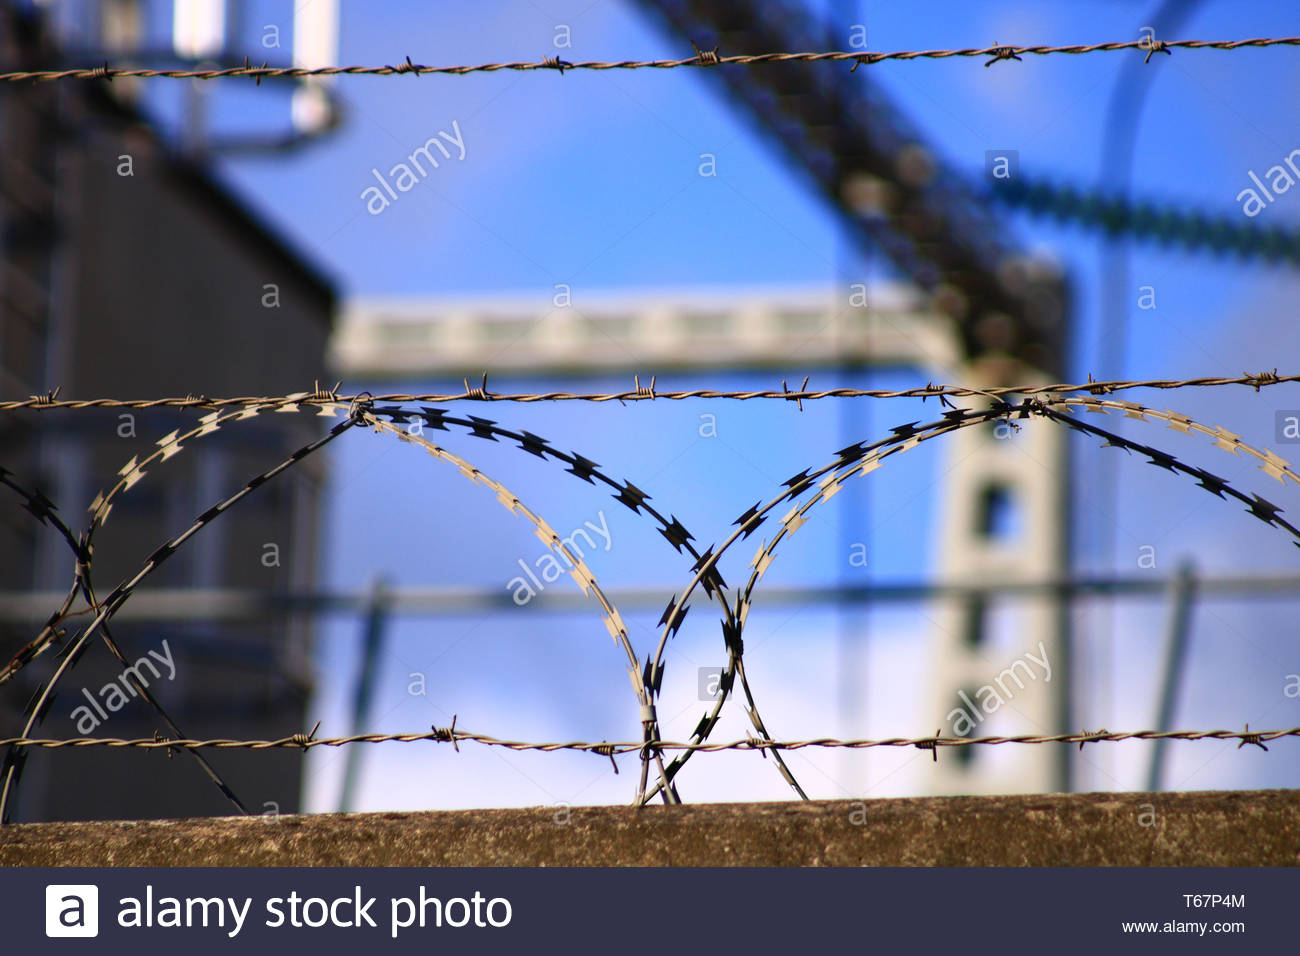 Anti intrusion system at the entrance of an industry View of barbed wire overhanging a perimeter wall - Stock Image